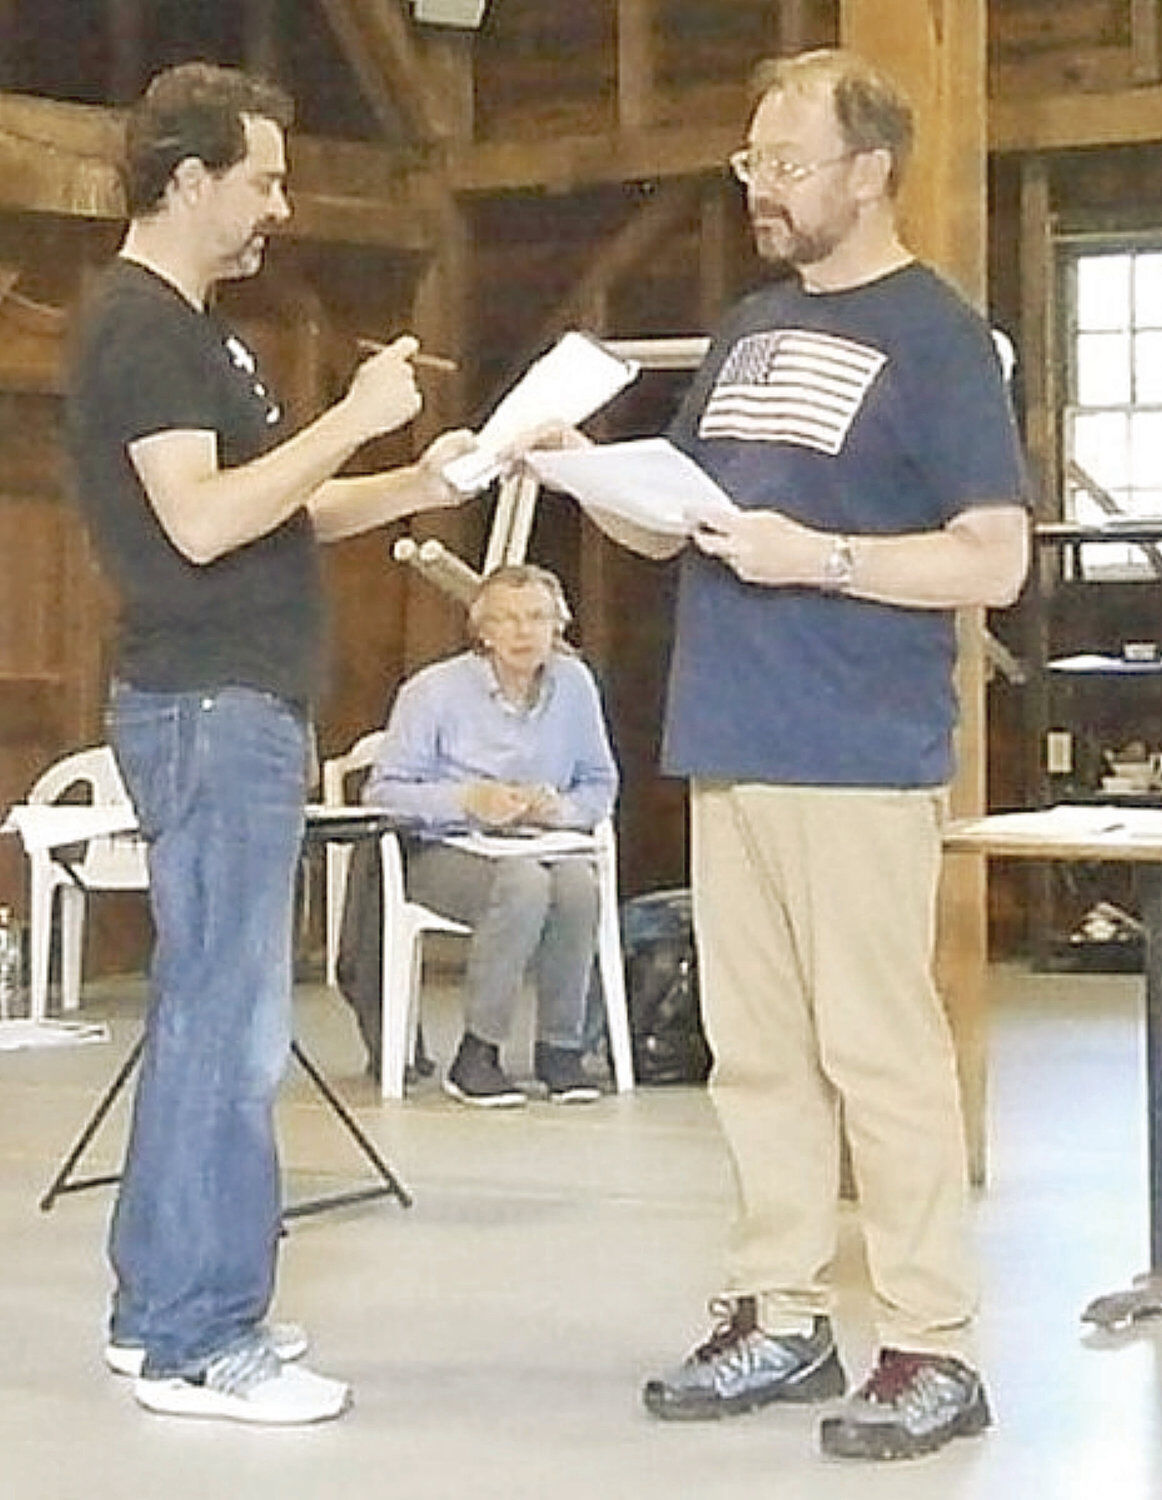 Two rock stars of the Gilded Age, Ulysses S. Grant and Mark Twain, forge a bond in a new play at PS21